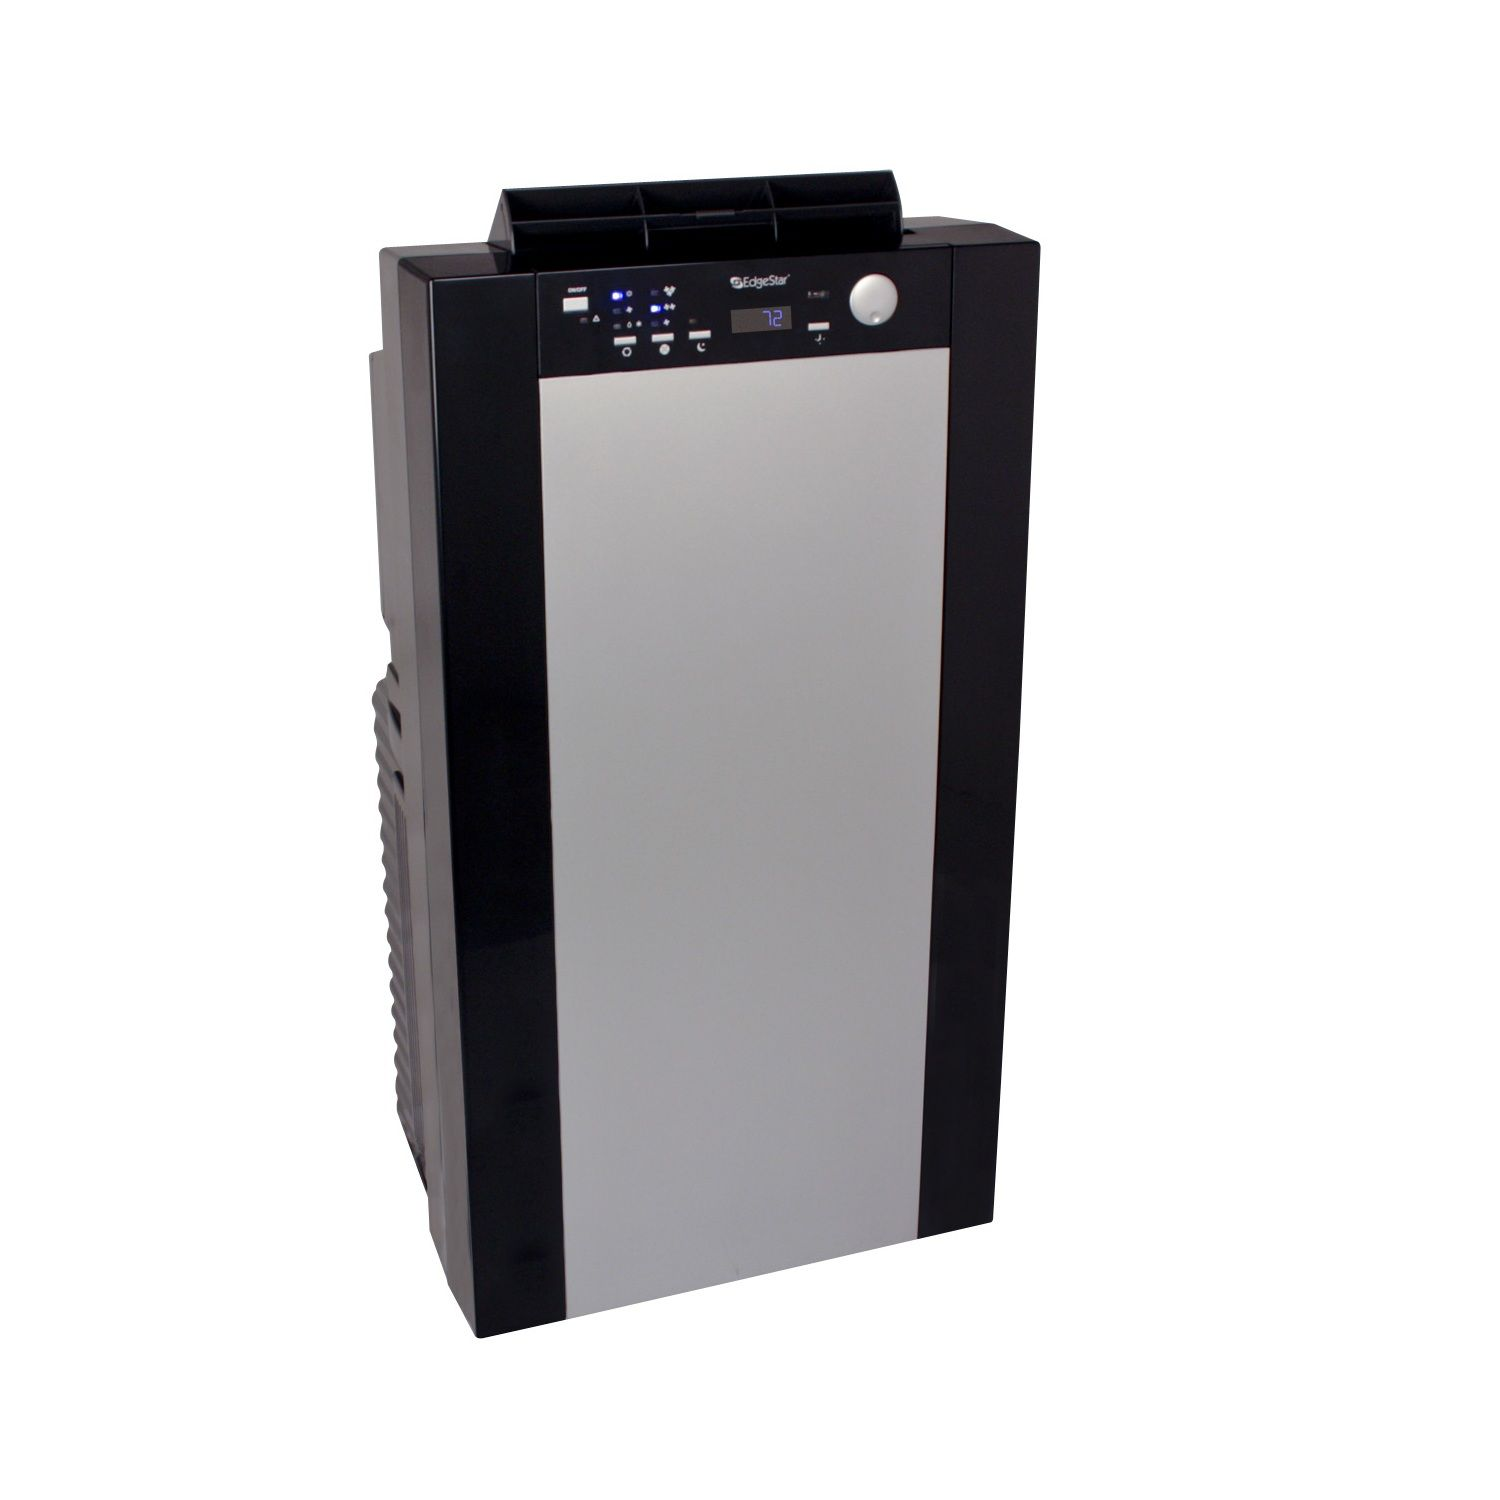 Small Dehumidifier For Bedroom Smallest Dehumidifier In Black And Silver Tones Why A Small